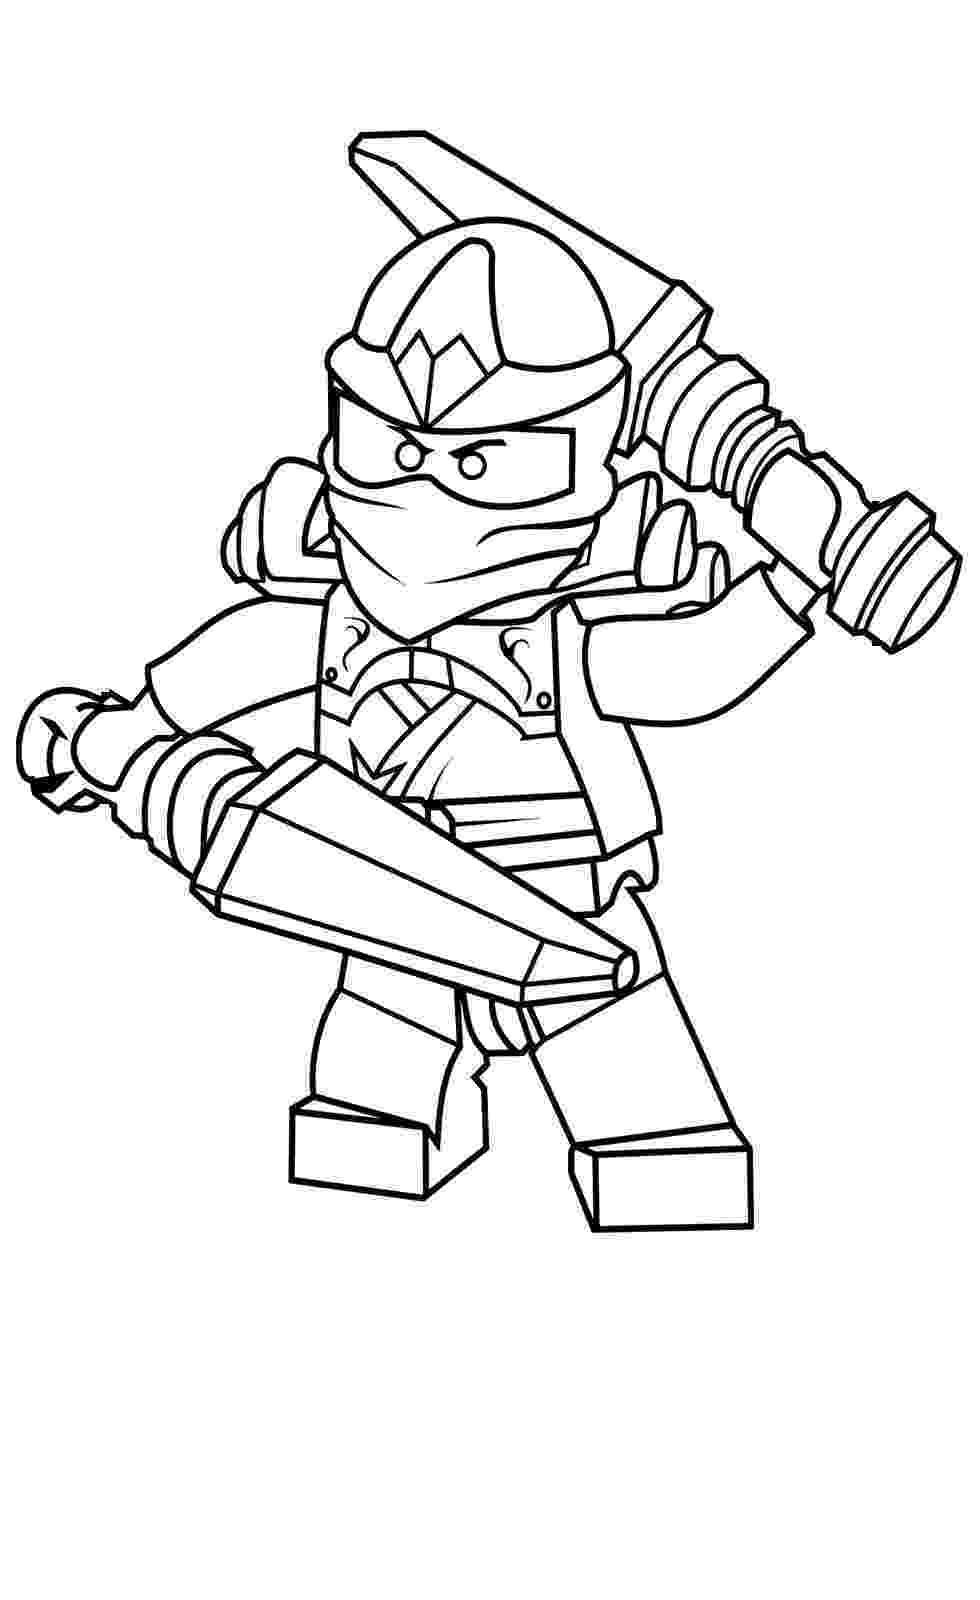 free lego printable coloring book free printable lego coloring pages for kids cool2bkids coloring lego book printable free